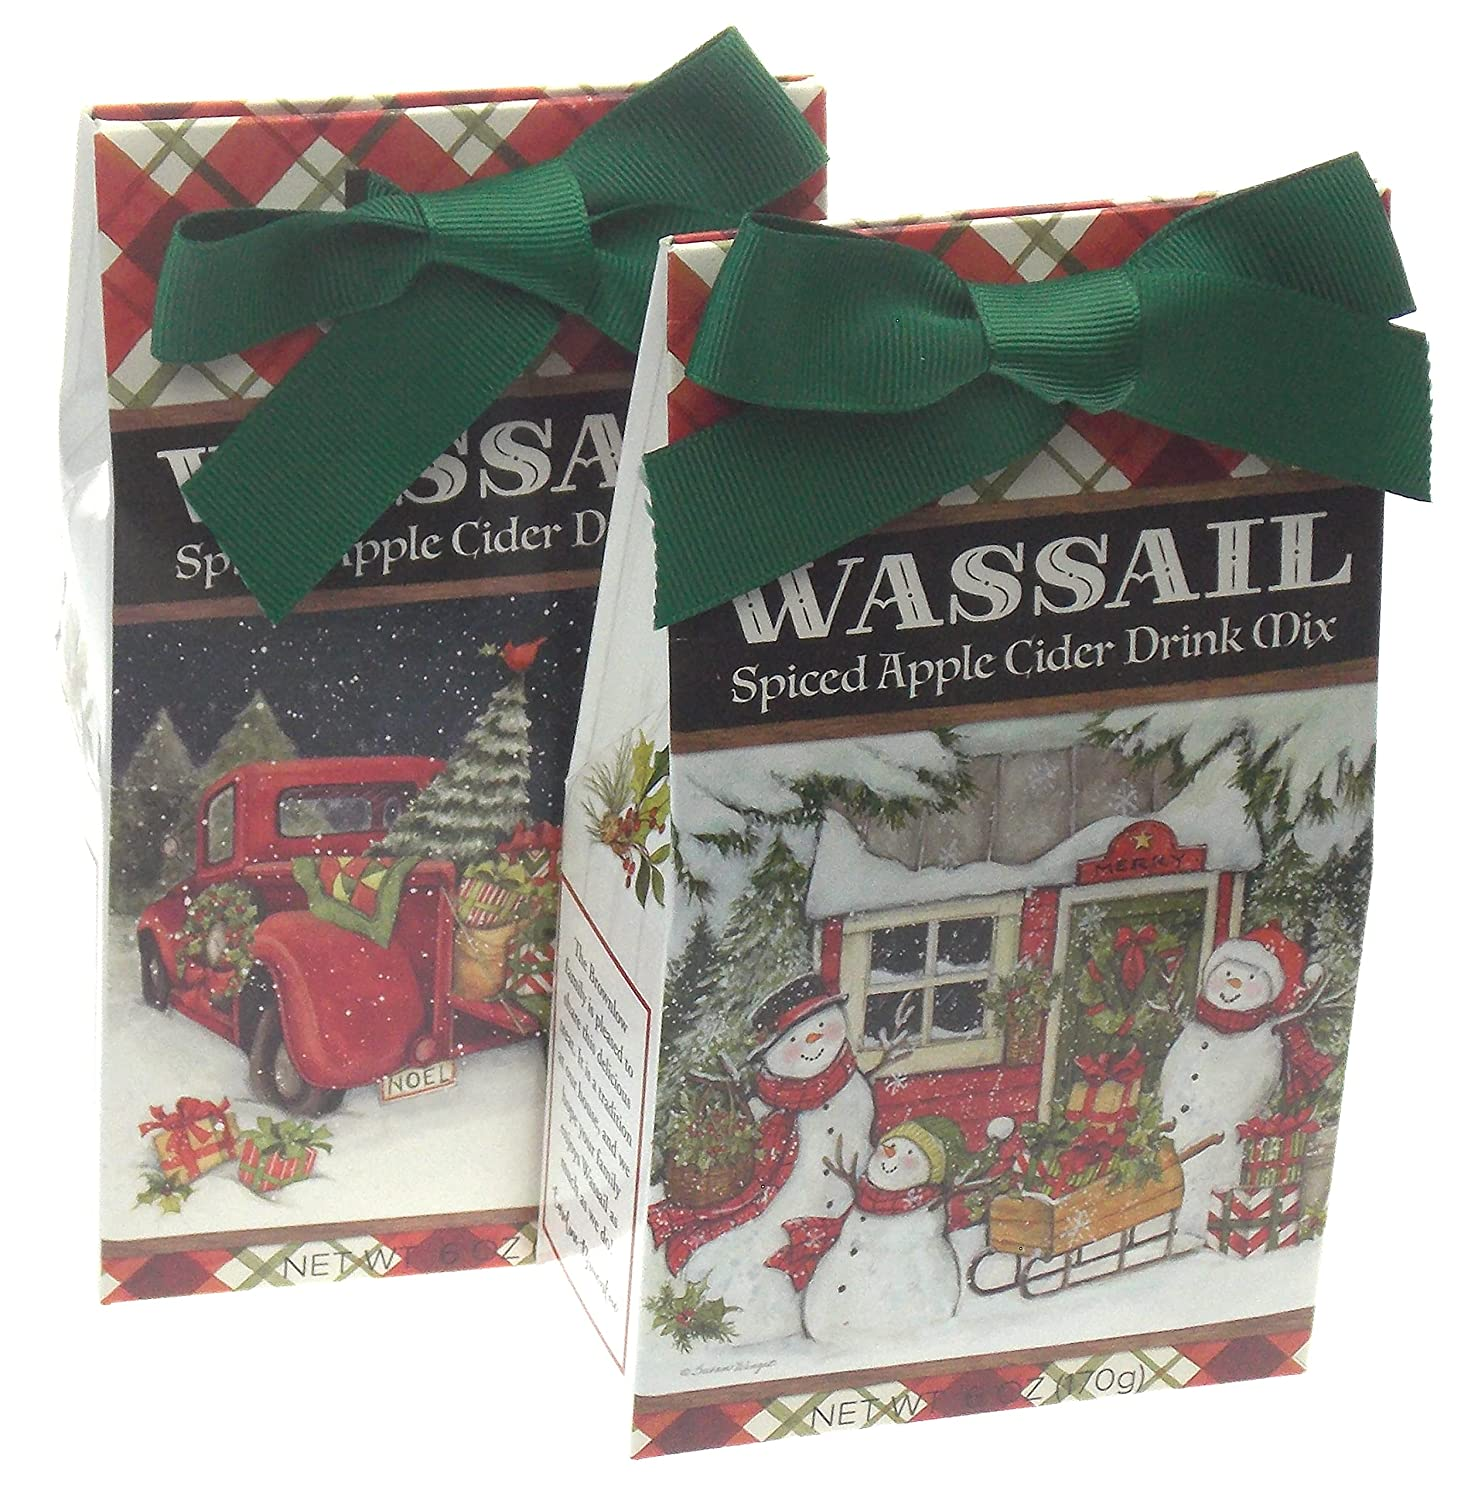 Spiced Apple Cider Wassail Gift Set Bundle - Christmas Red Truck & Snowman Family Holiday Scene Plus a Gift Card